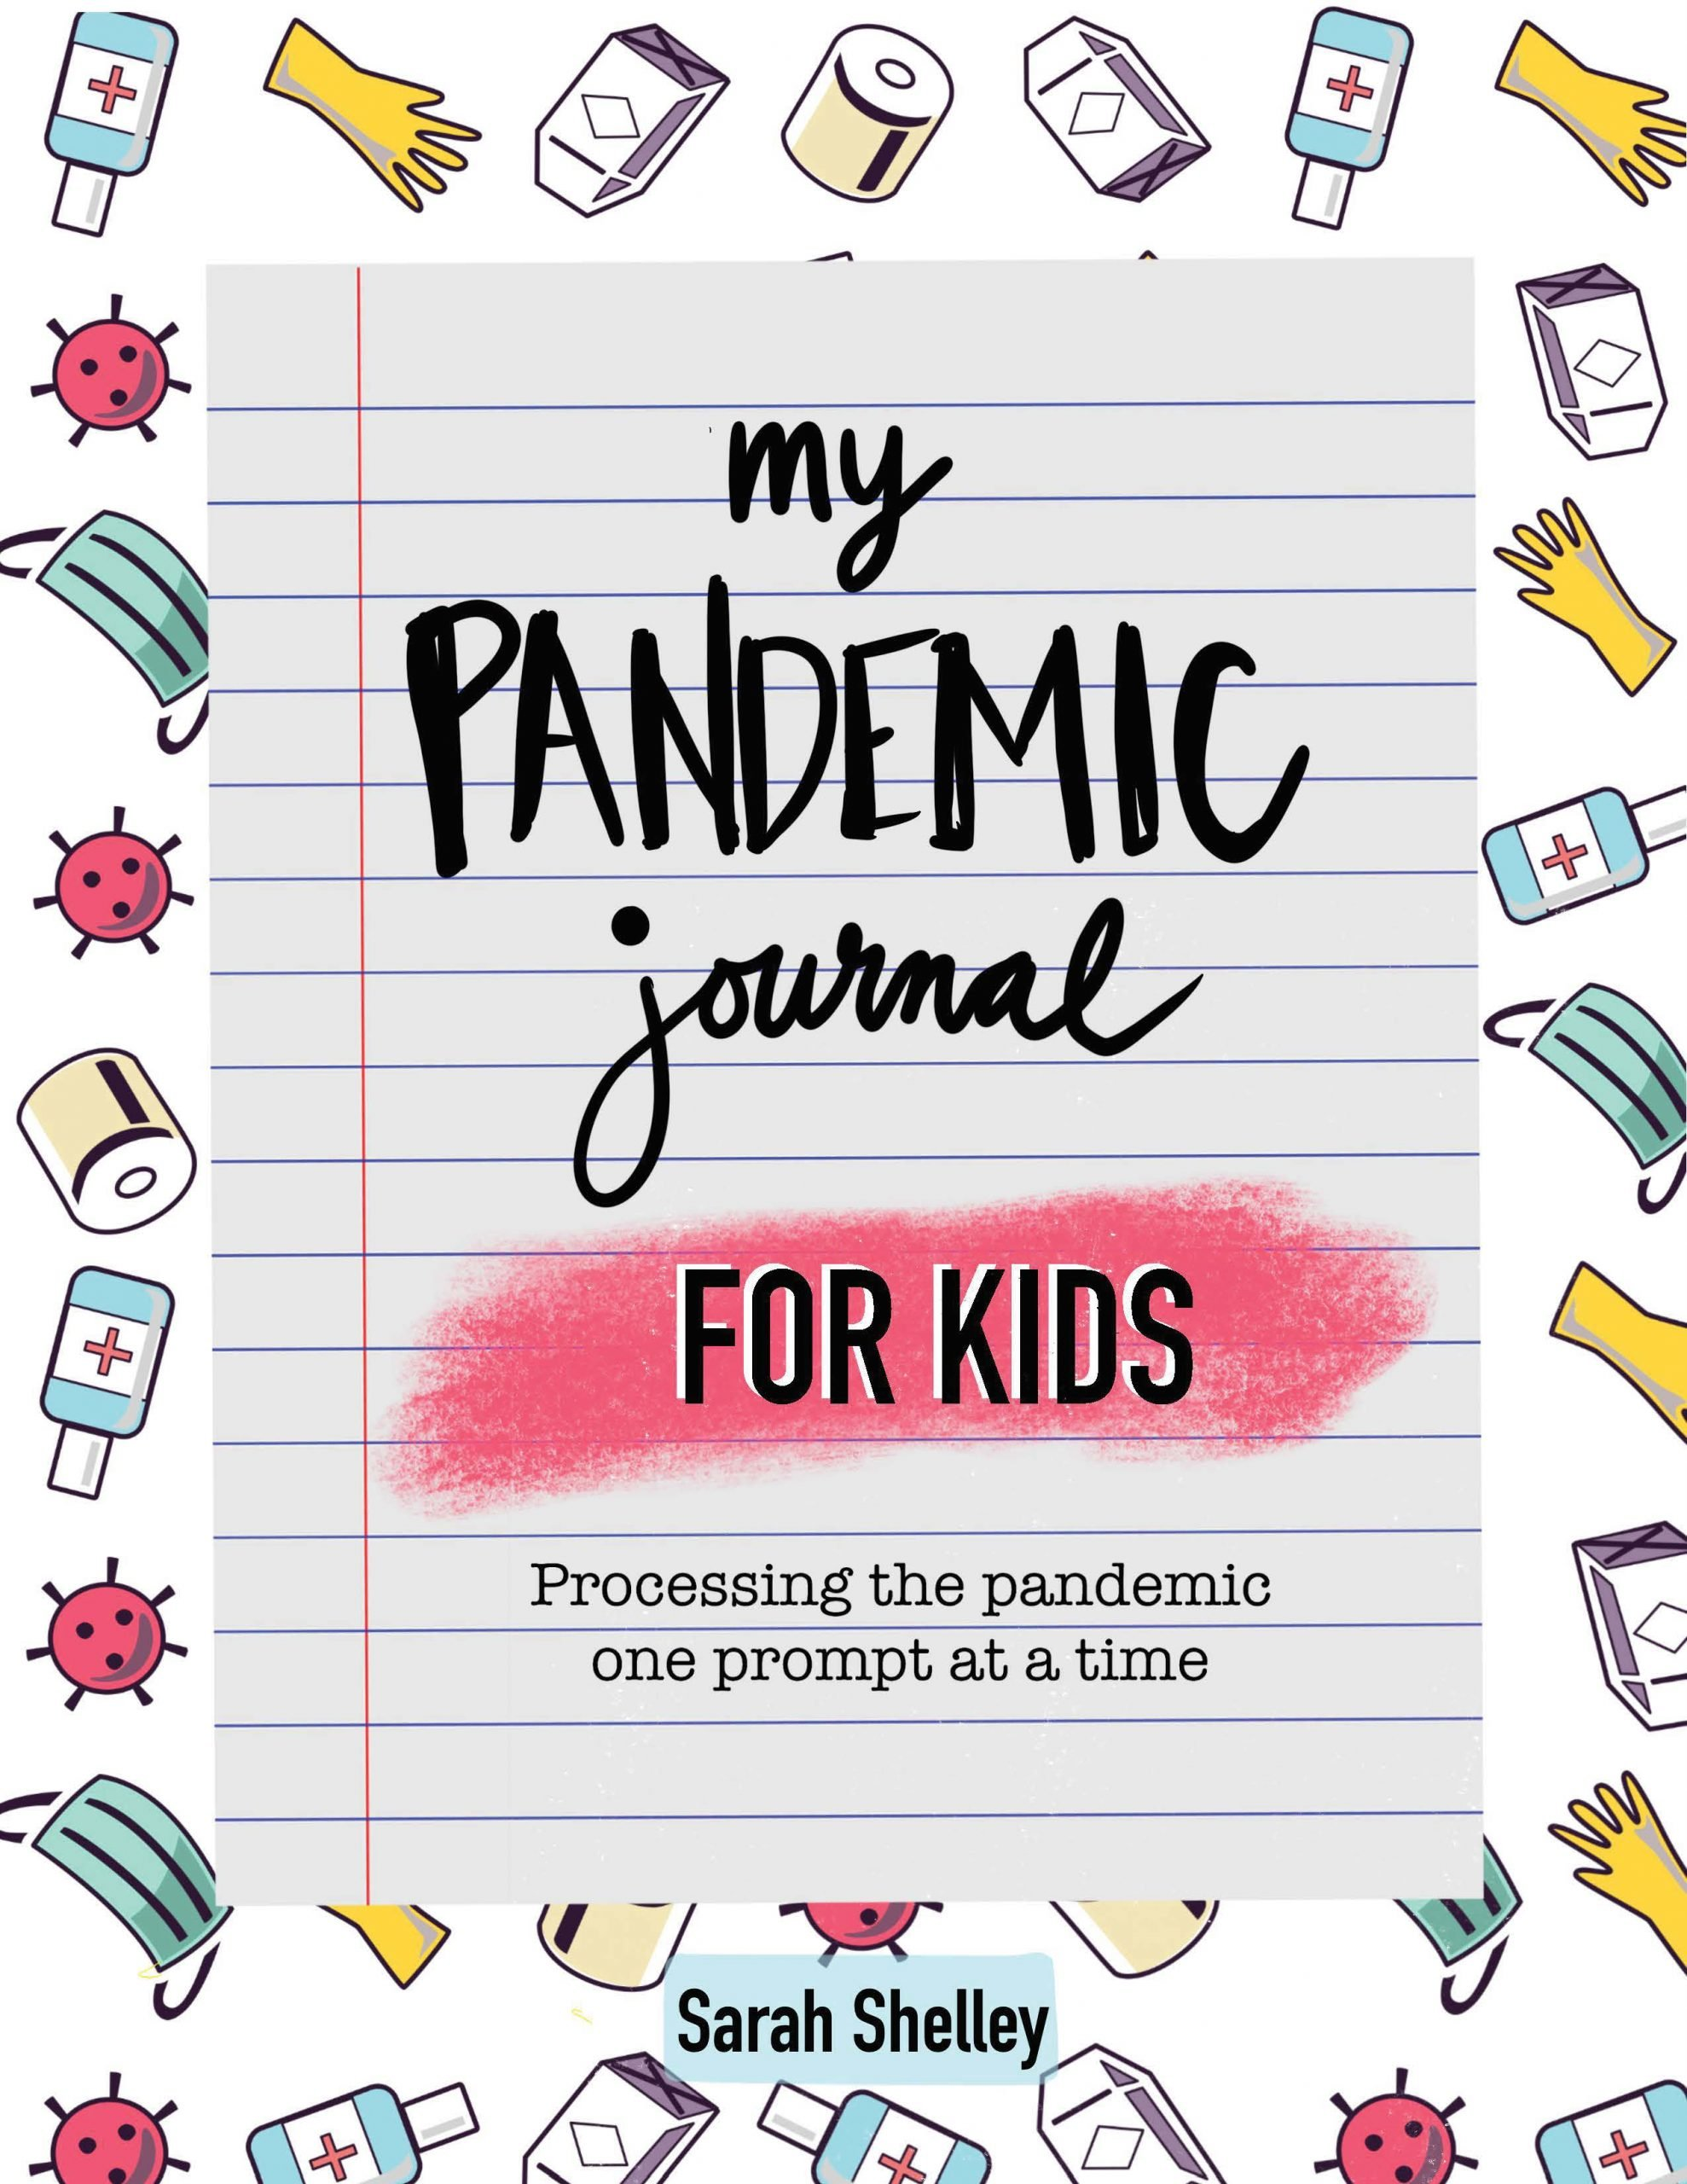 My Pandemic Journal for Kids